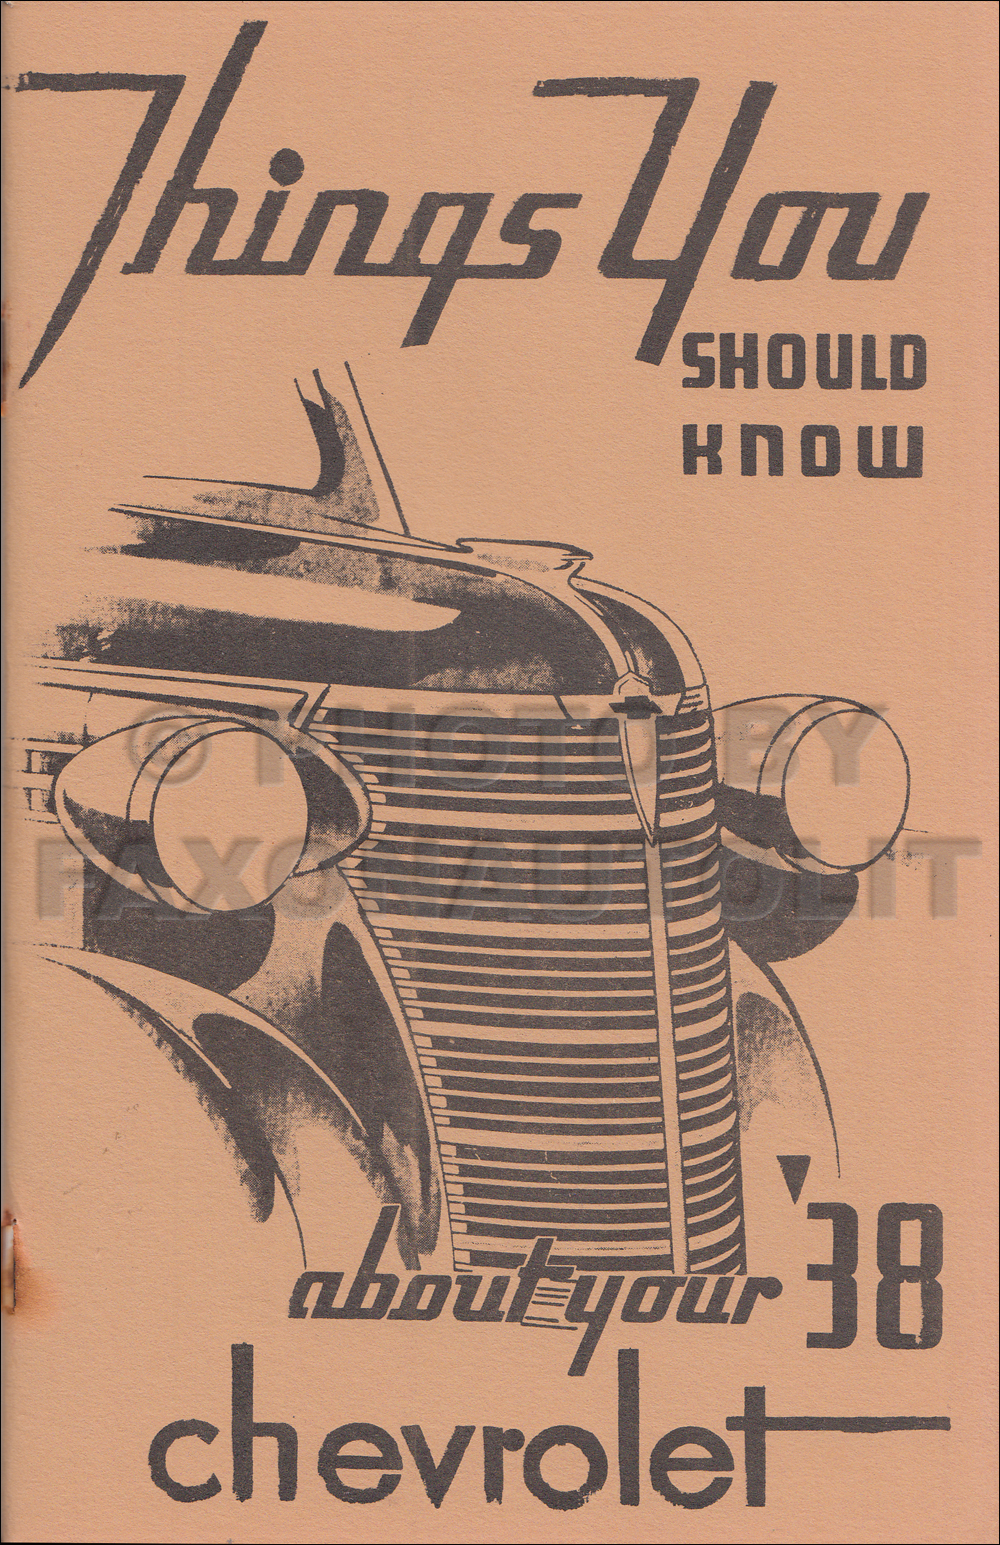 1938 Chevrolet Car Owner's Manual Reprint, older edition